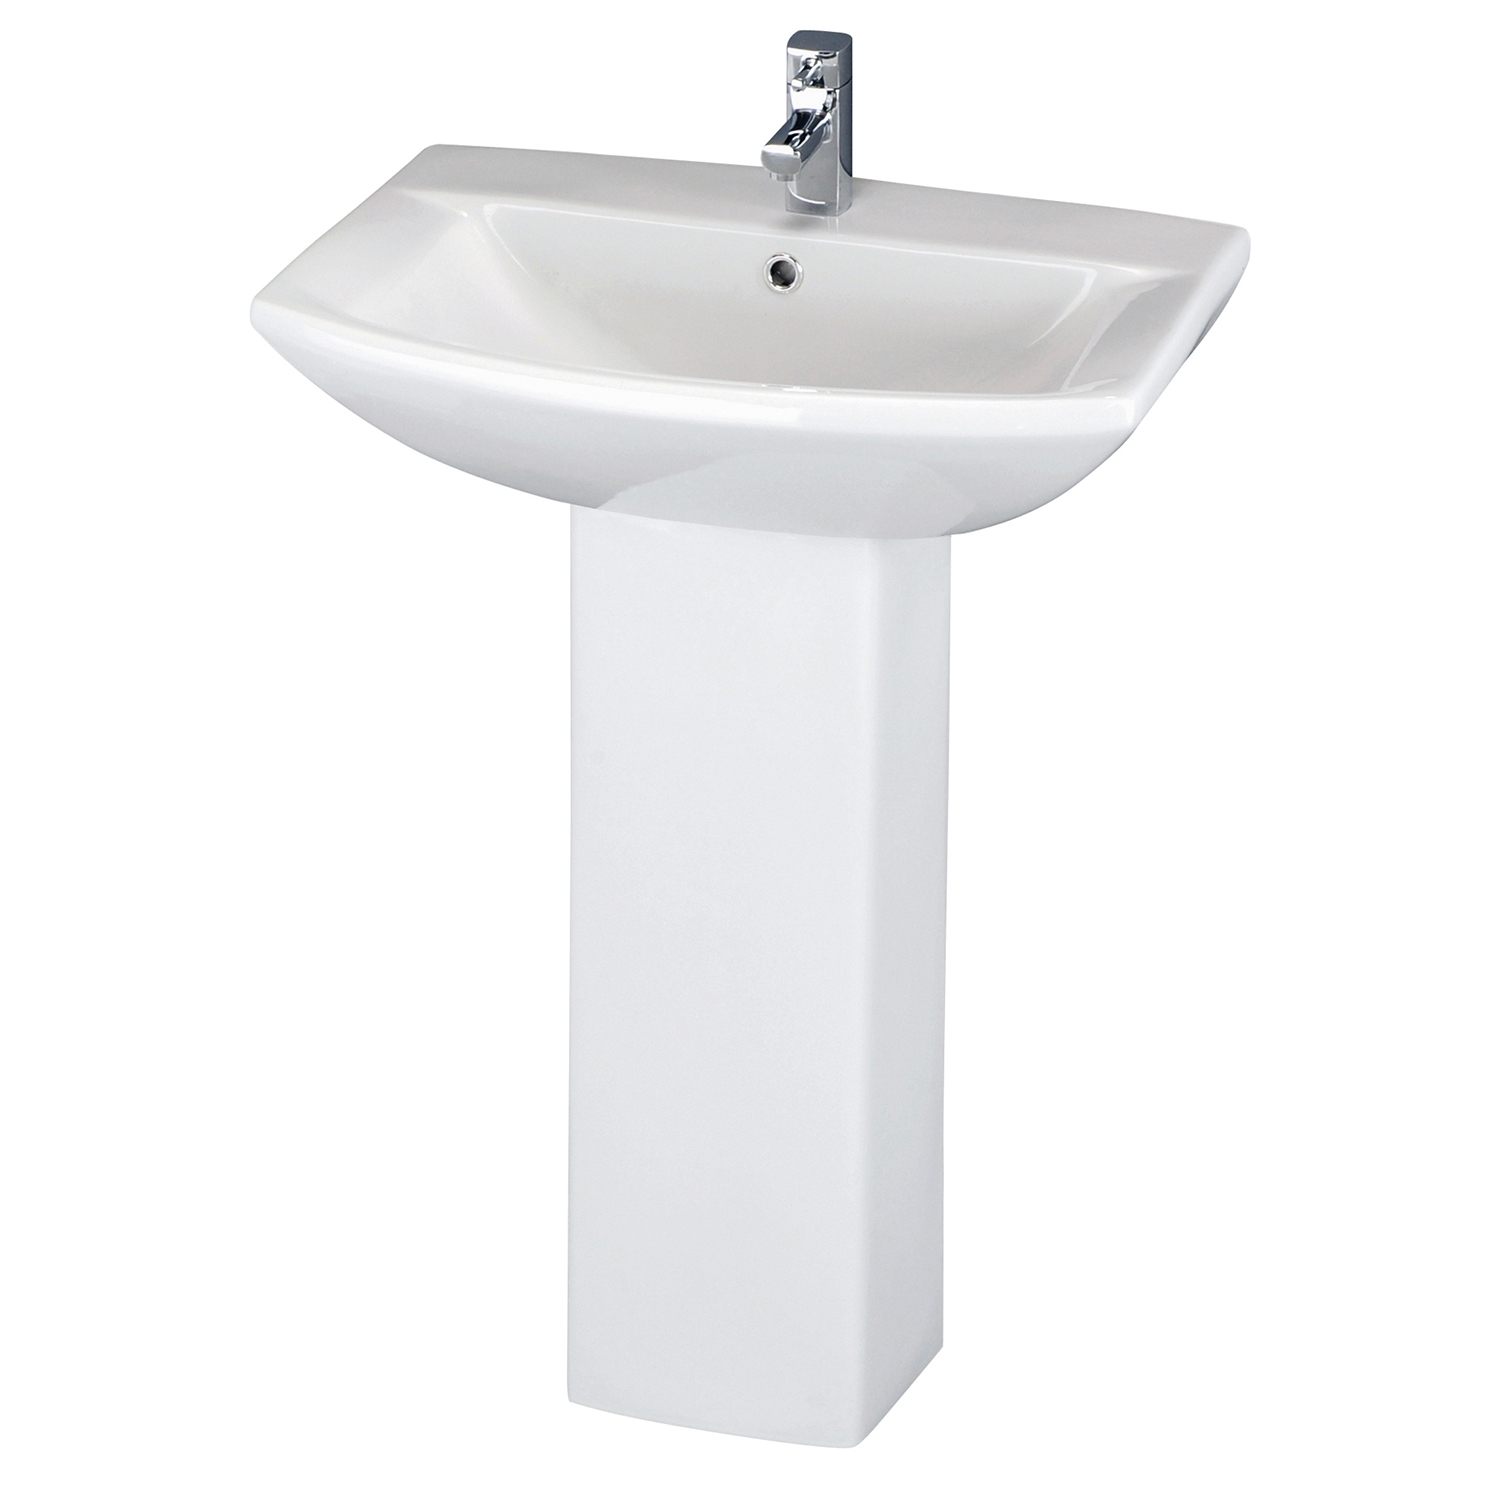 Premier Knedlington Basin and Full Pedestal 600mm Wide - 1 Tap Hole-0